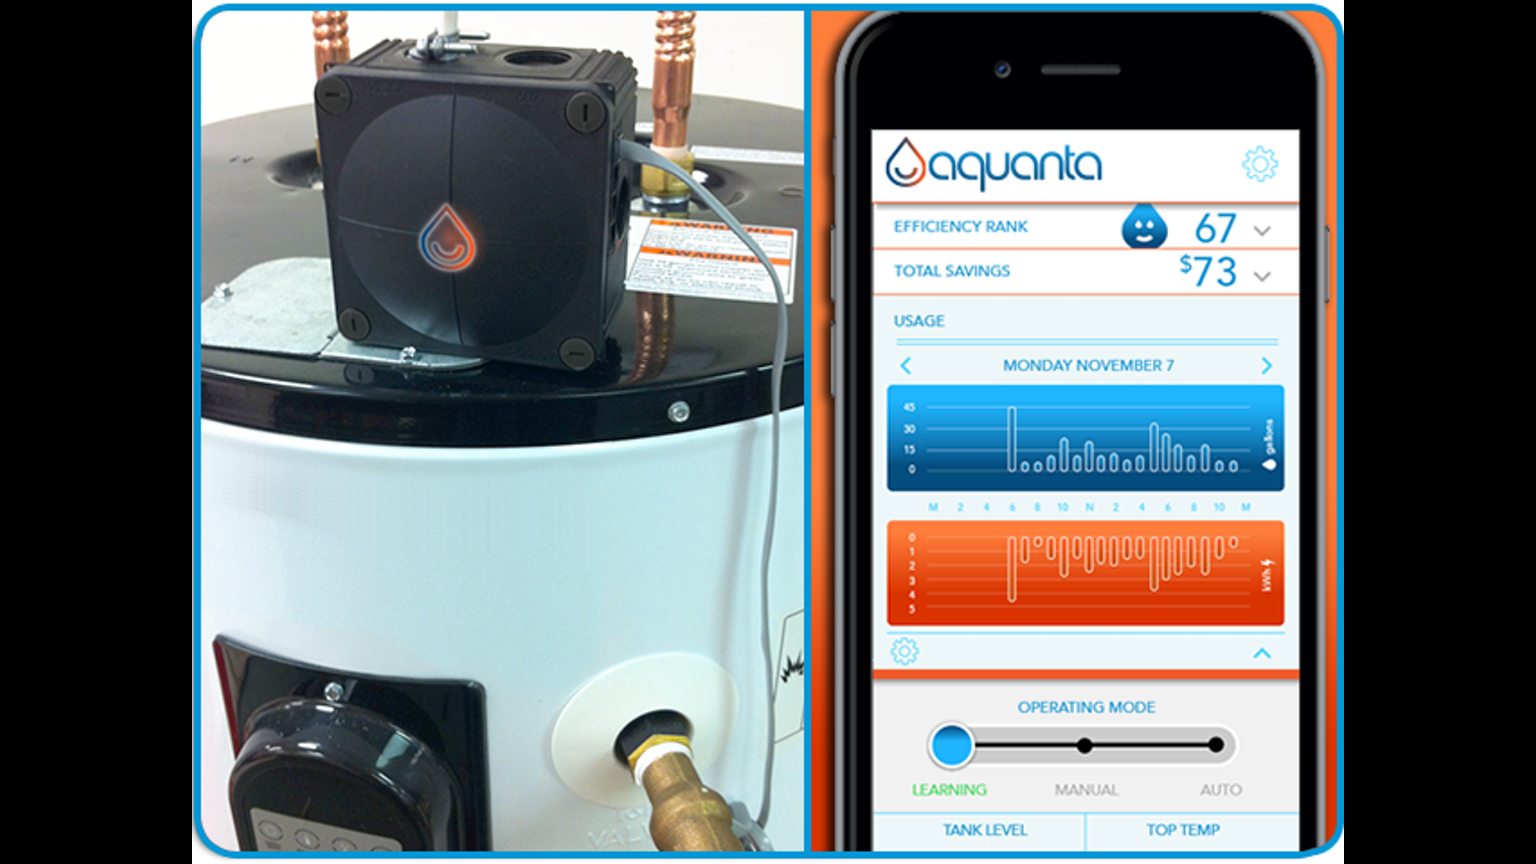 Aquanta Cool Technology For Hot Water Canceled By